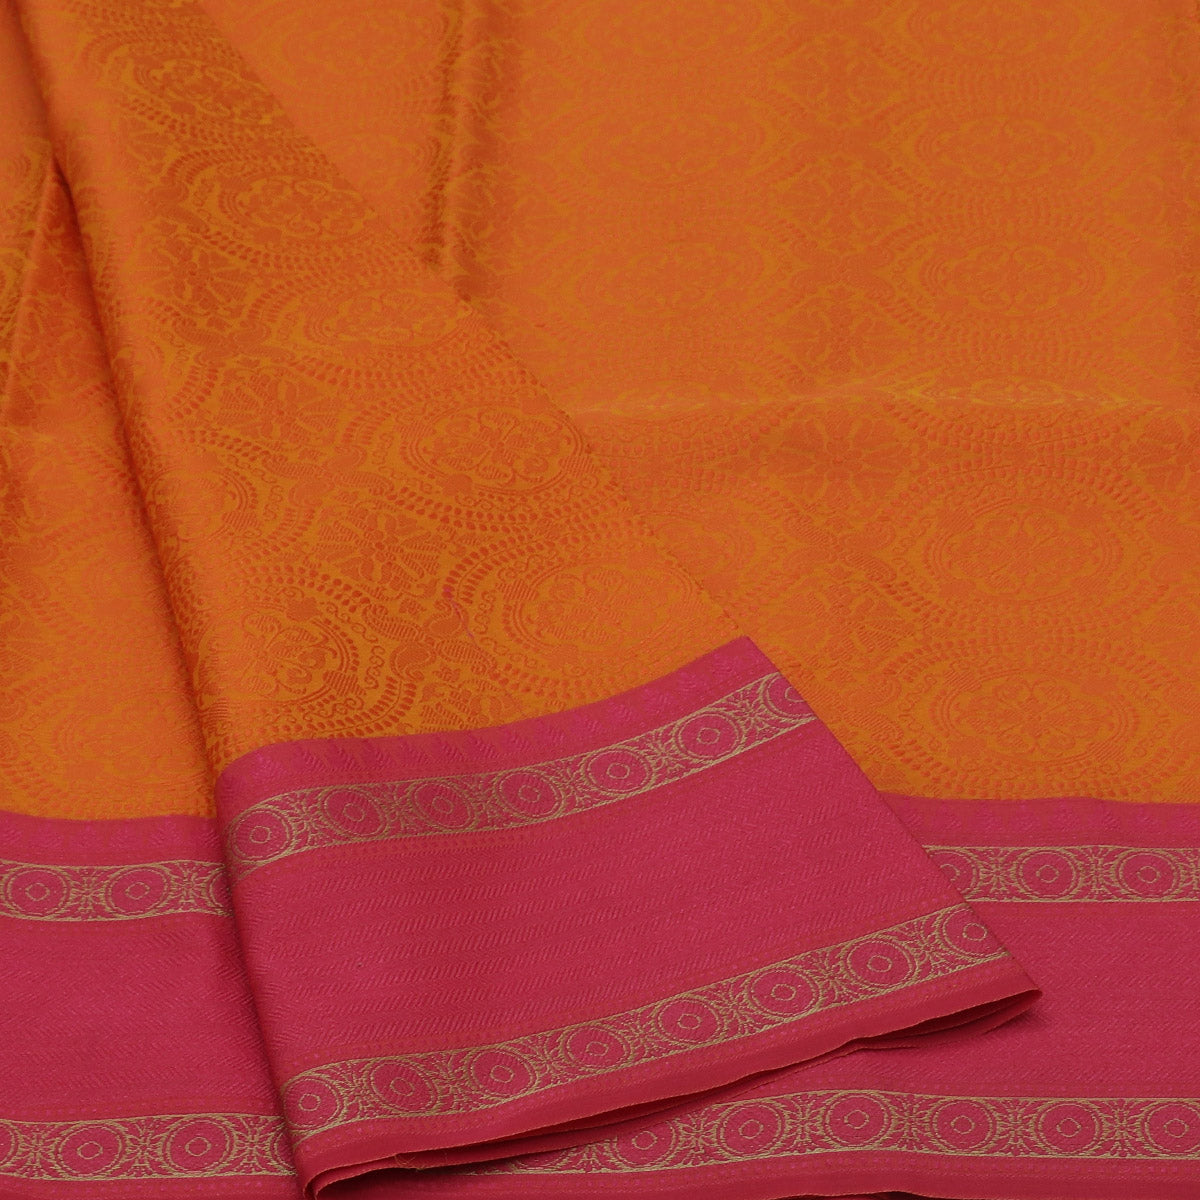 Banarasi Kora Muslin Saree Orange and Pink with Round border for Rs.Rs. 1765.00 | Banarasi Sarees by Prashanti Sarees